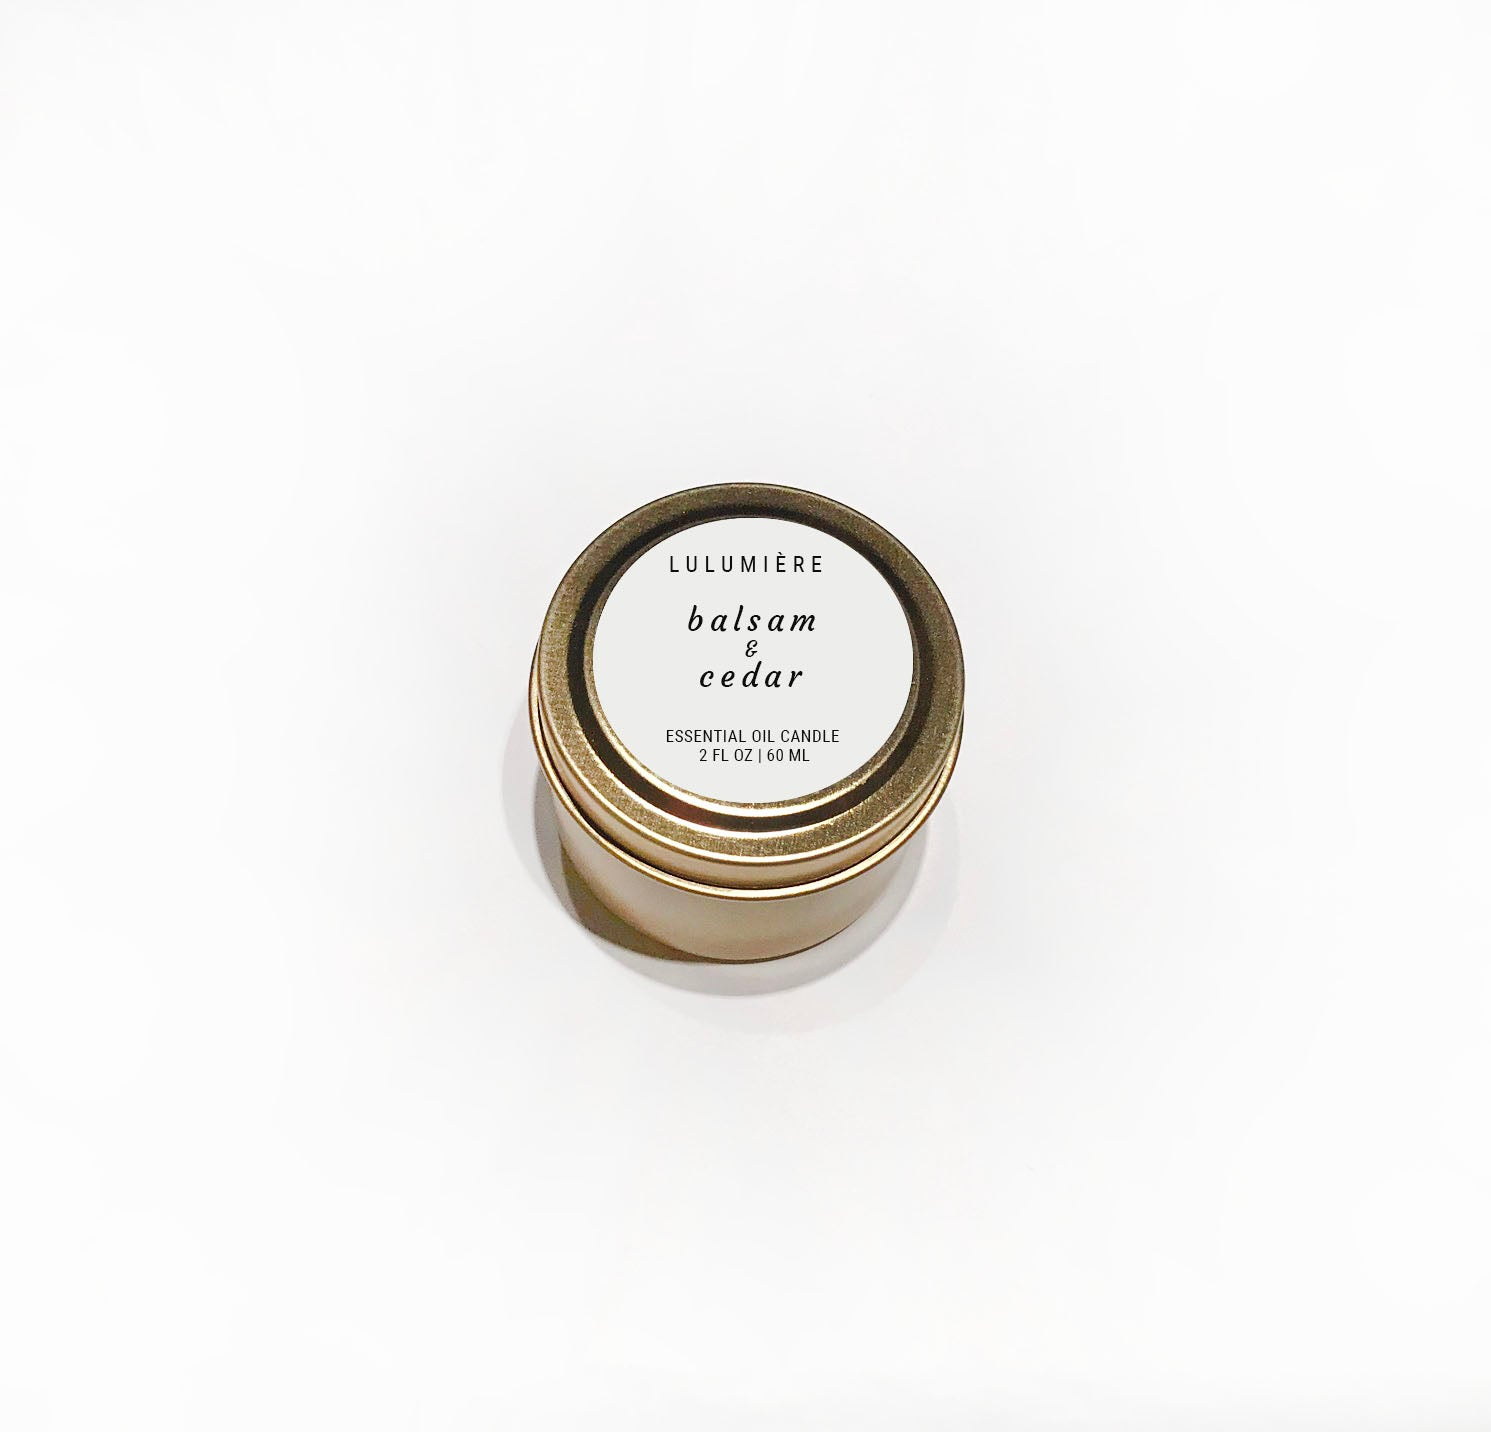 Balsam & Cedar Mini 100% Essential Oil Candle